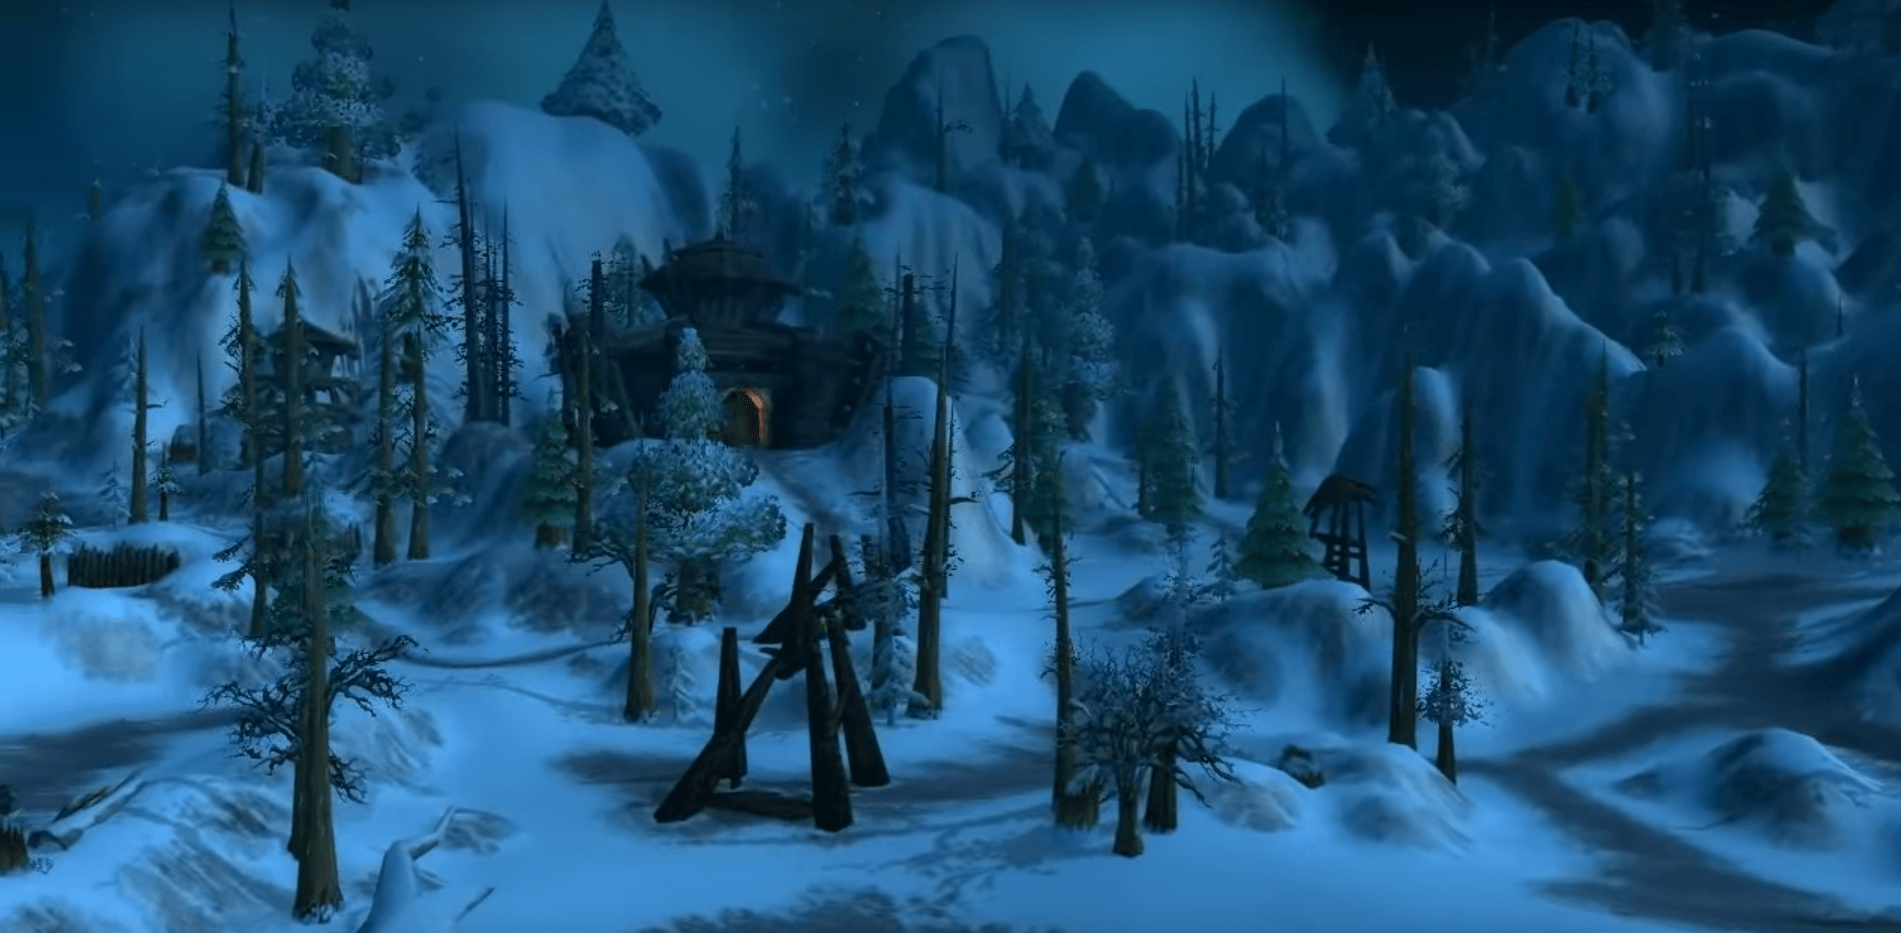 Alterac Valley And Warsong Gultch Battlegrounds Are Now Live In World of Warcraft: Classic